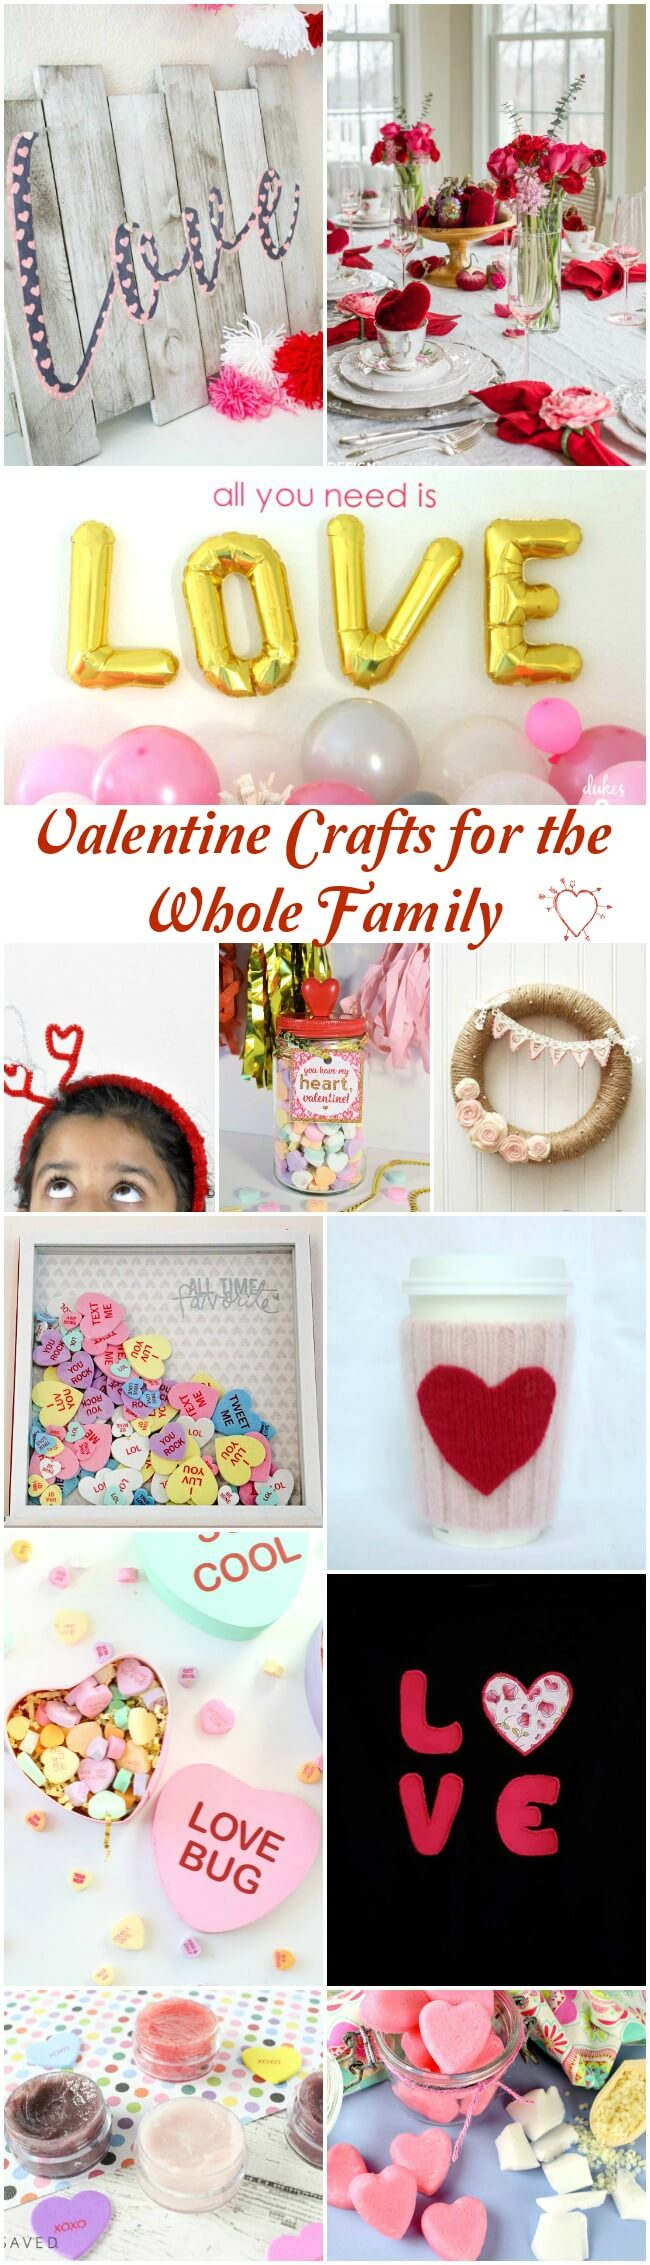 It's time to get crafty with these 12 Valentine Crafts for the Whole Family to make. Stop by your local craft supply store and get ready to create some fun!